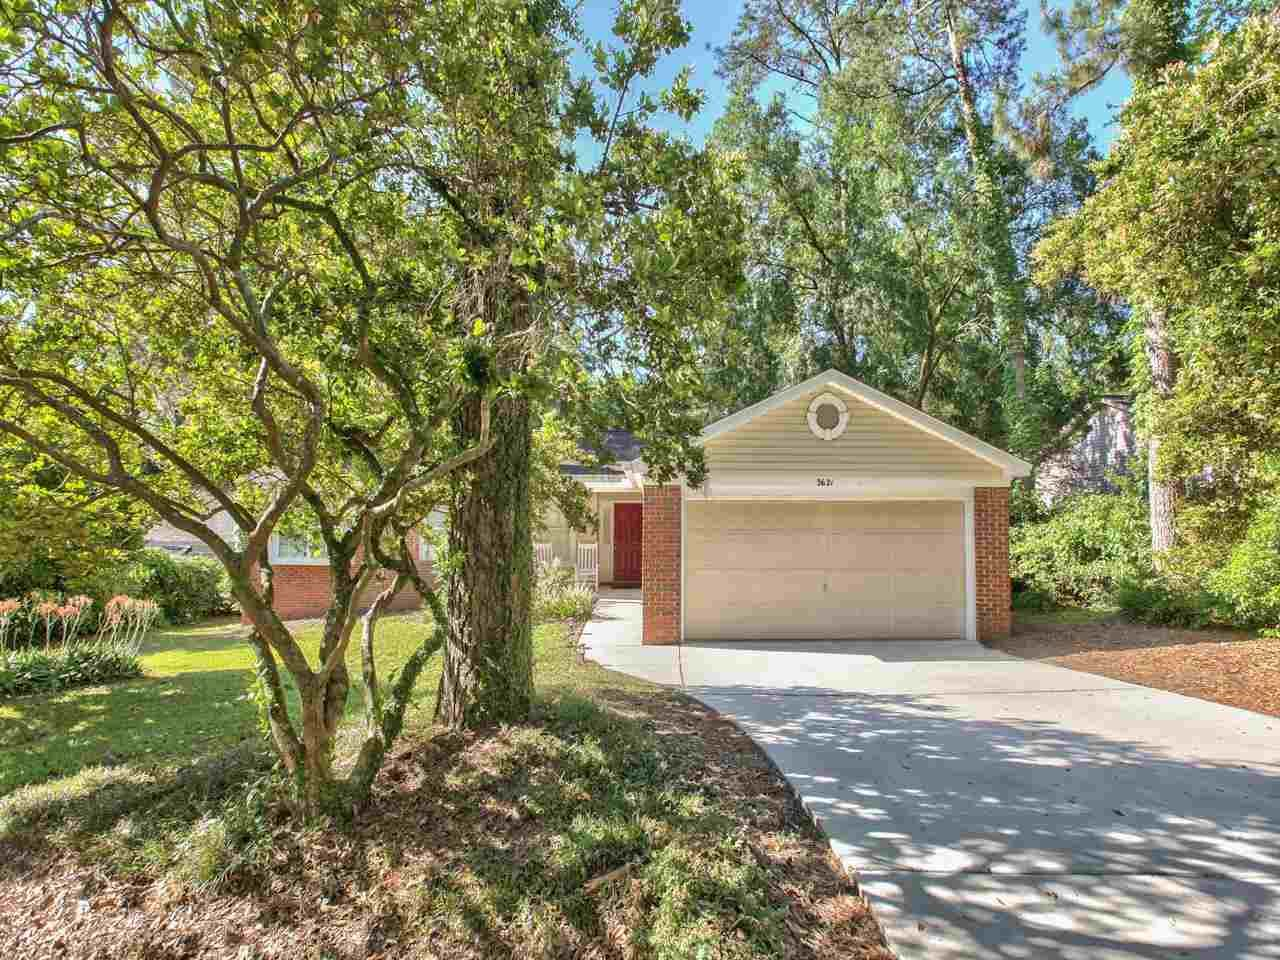 Photo of 3621 Molly Pitcher Court, TALLAHASSEE, FL 32308 (MLS # 332094)